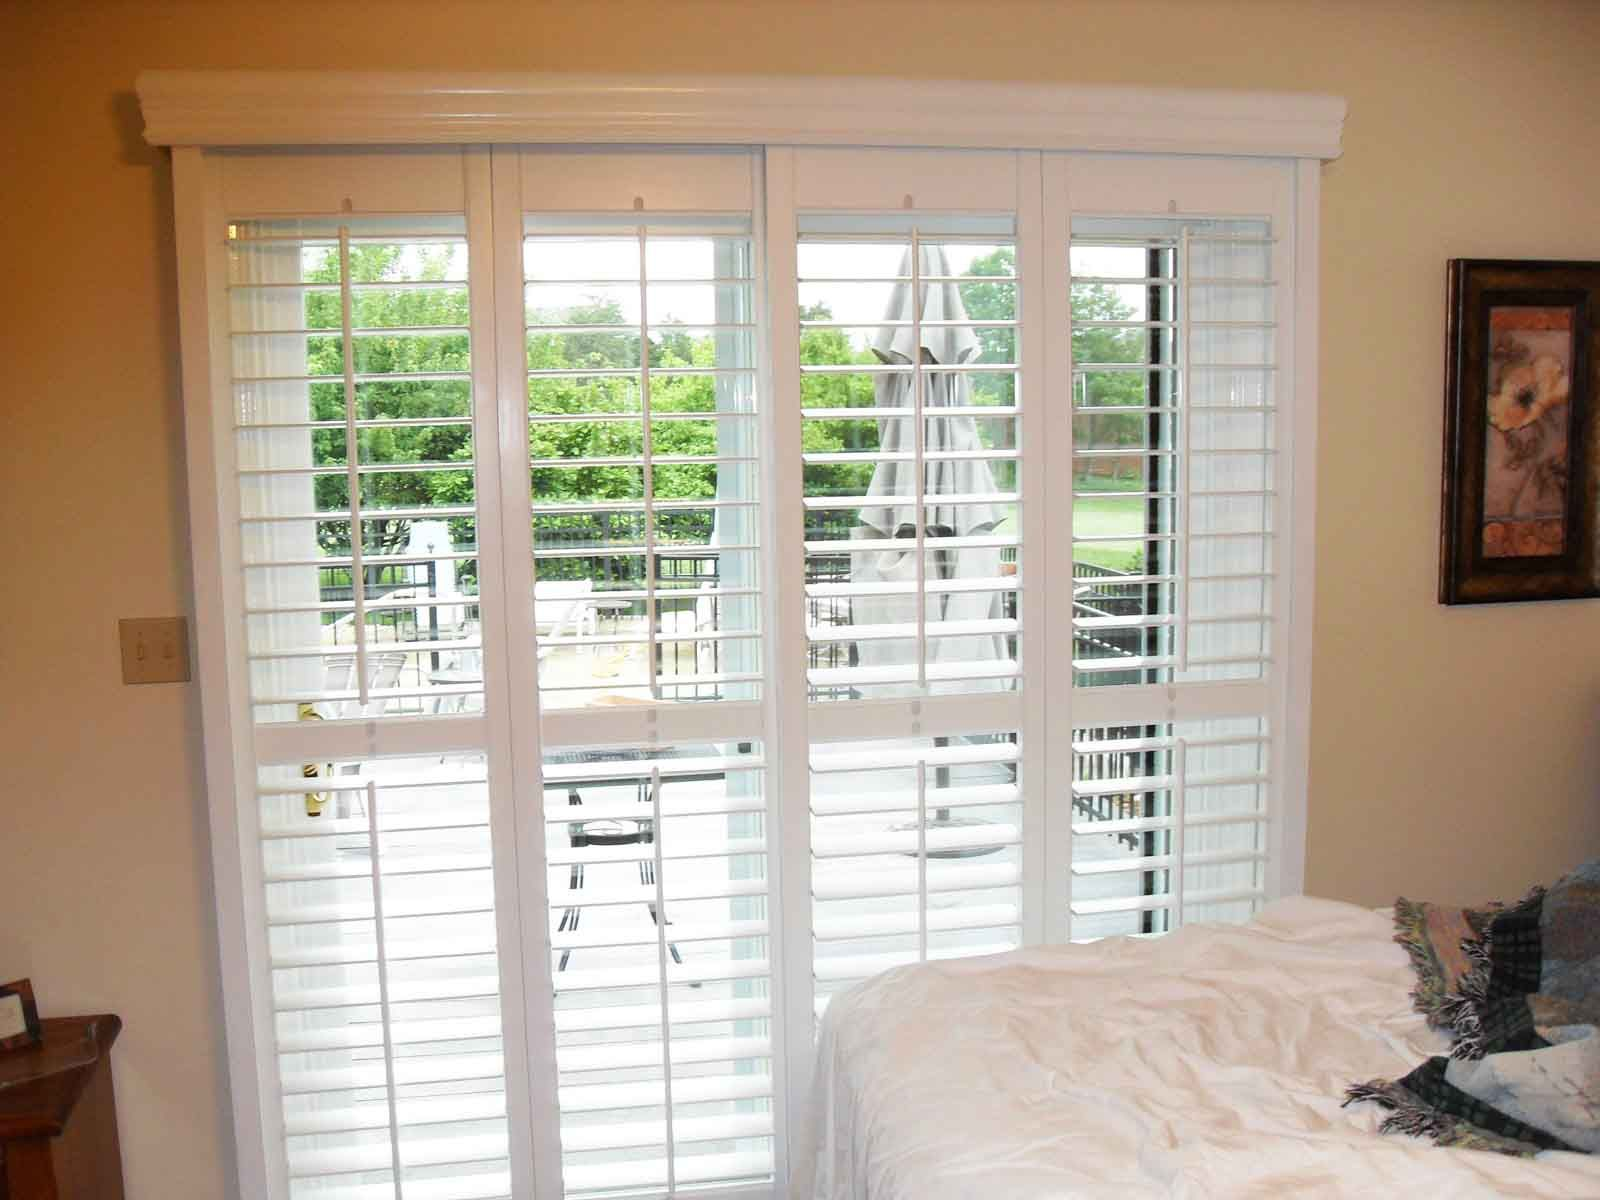 shutters shutter style roman bambooblinds luxury for bay of cost club window inspirational vs blinds plantation wood